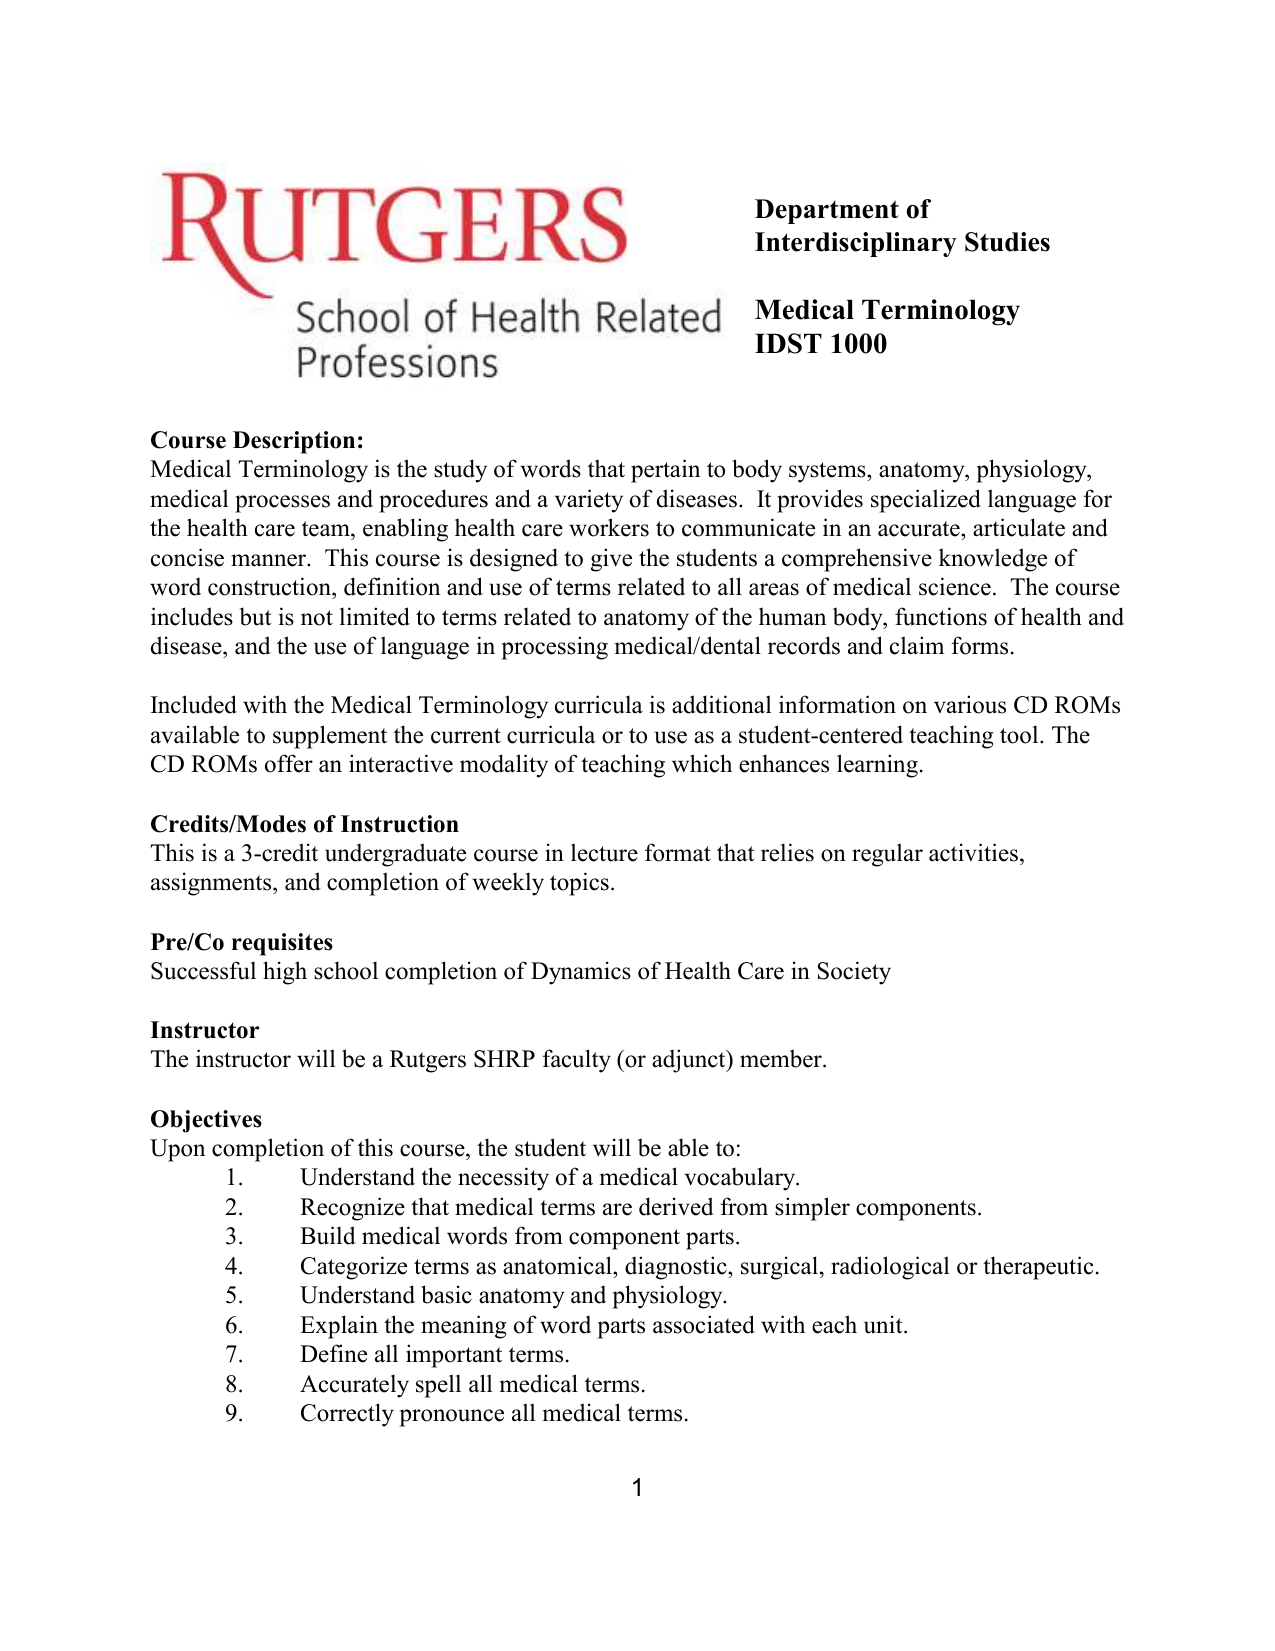 Ru Word Medical Terminology Rutgers School Of Health Related